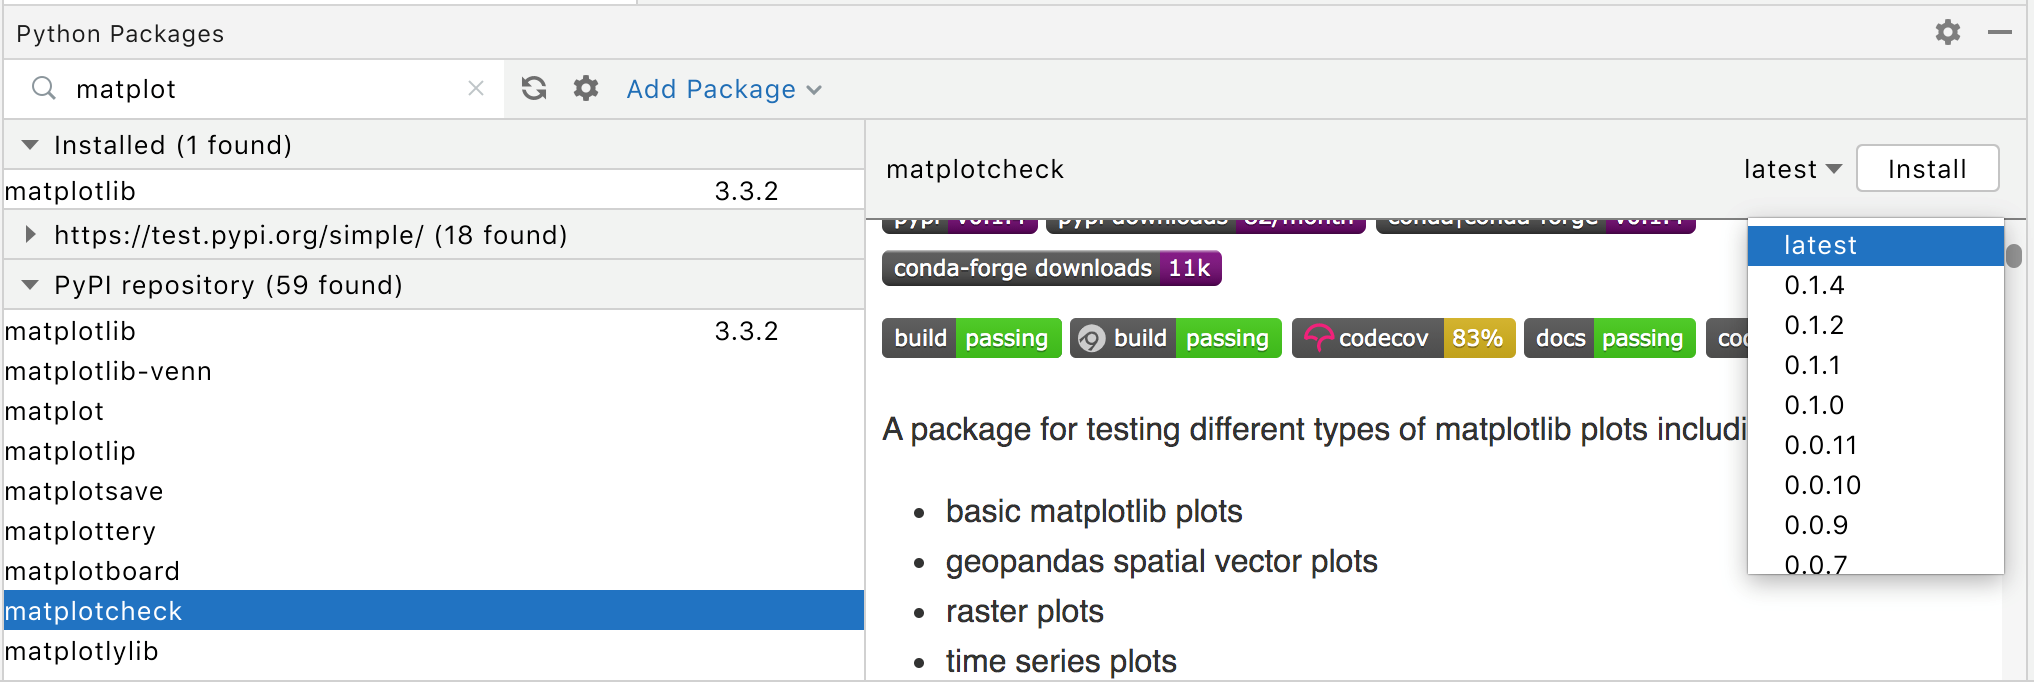 Install a package in the Python Packages tool window